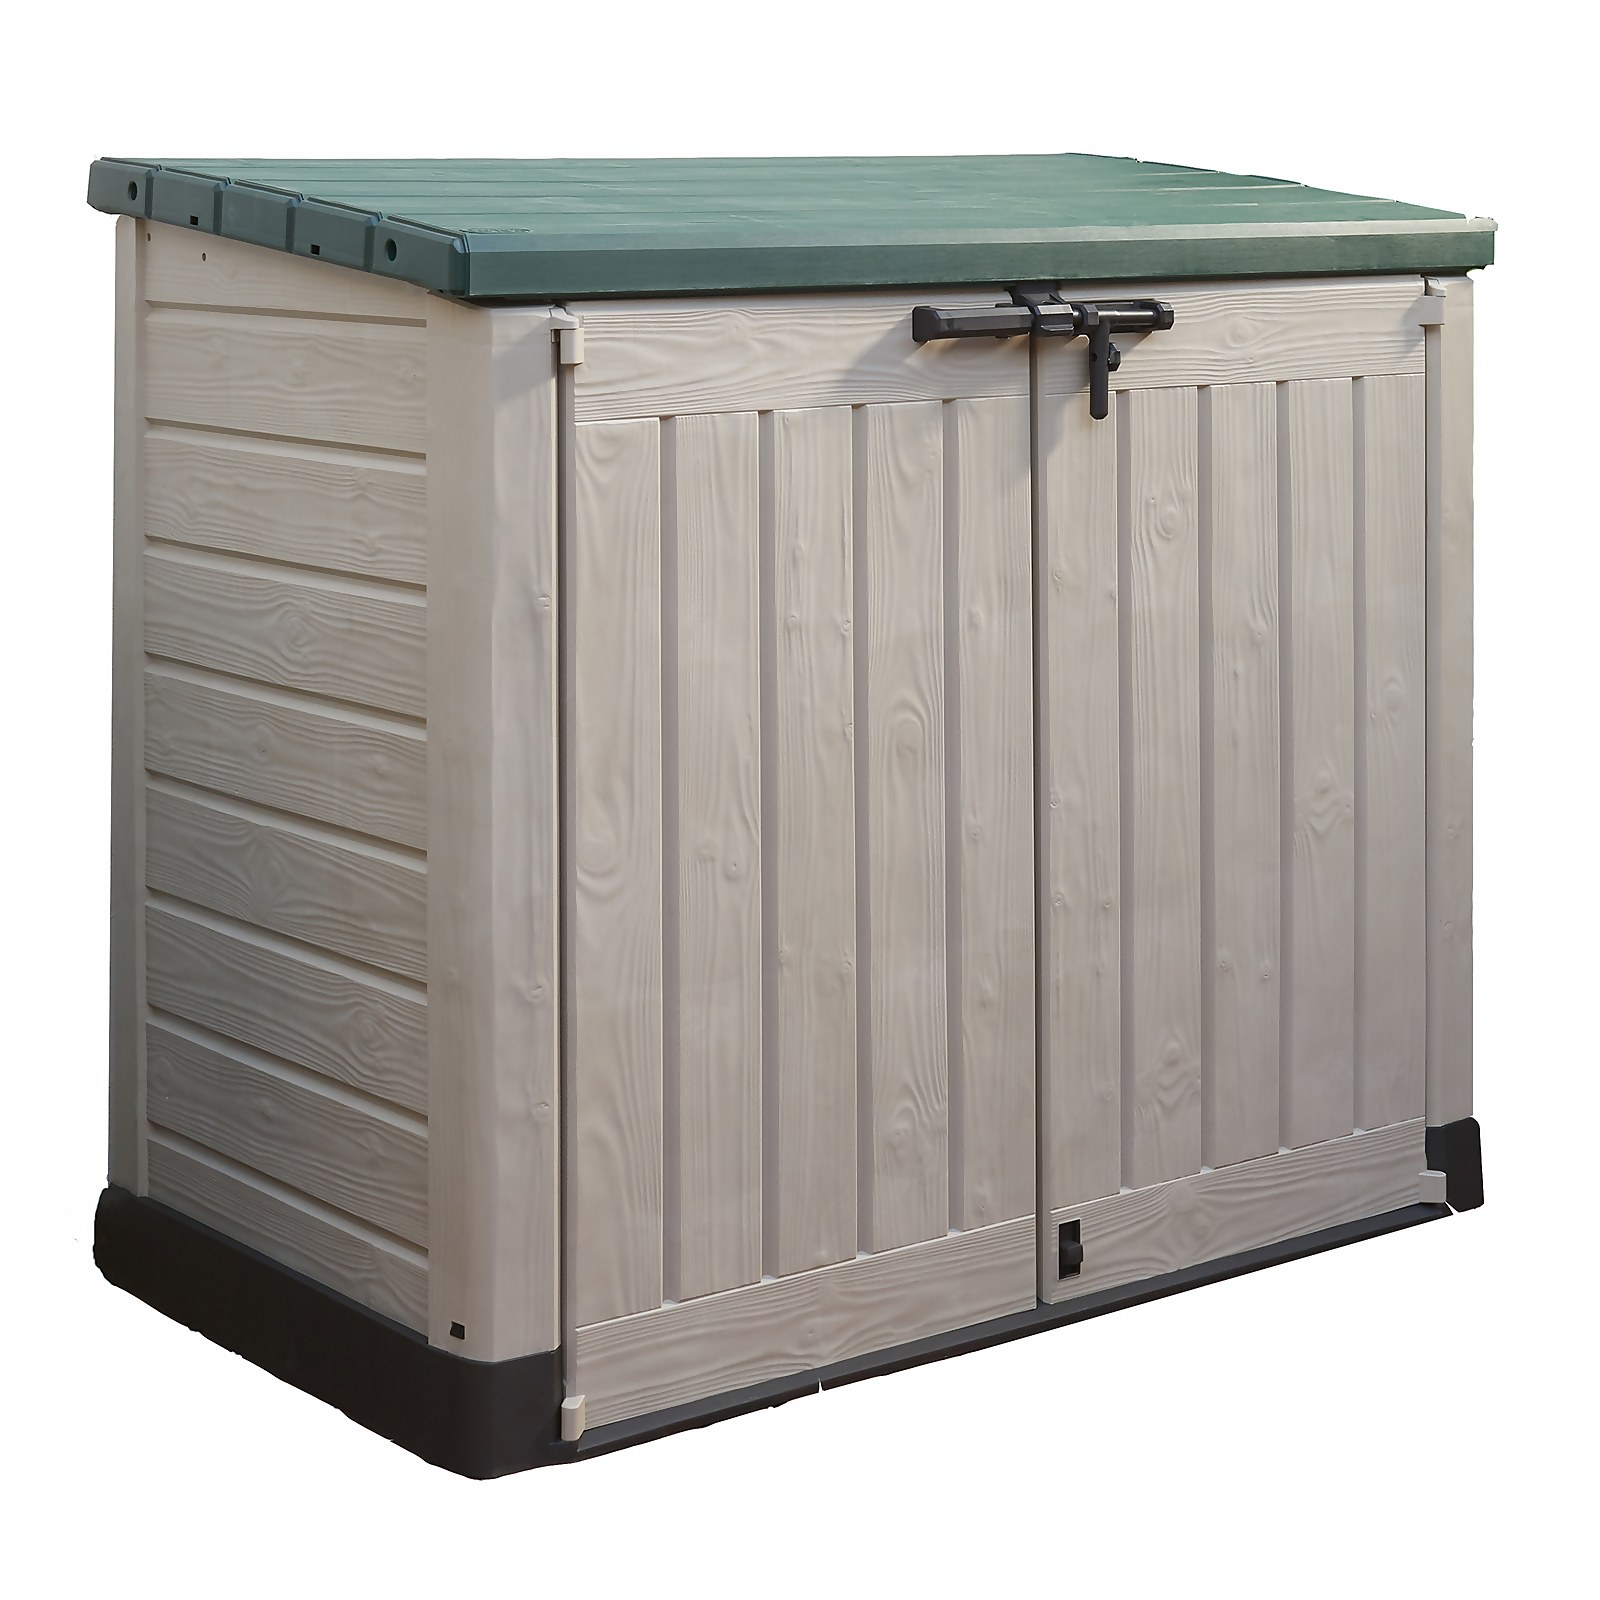 Keter Store It Out Max Outdoor Plastic Garden Storage 1200L - Beige & Green